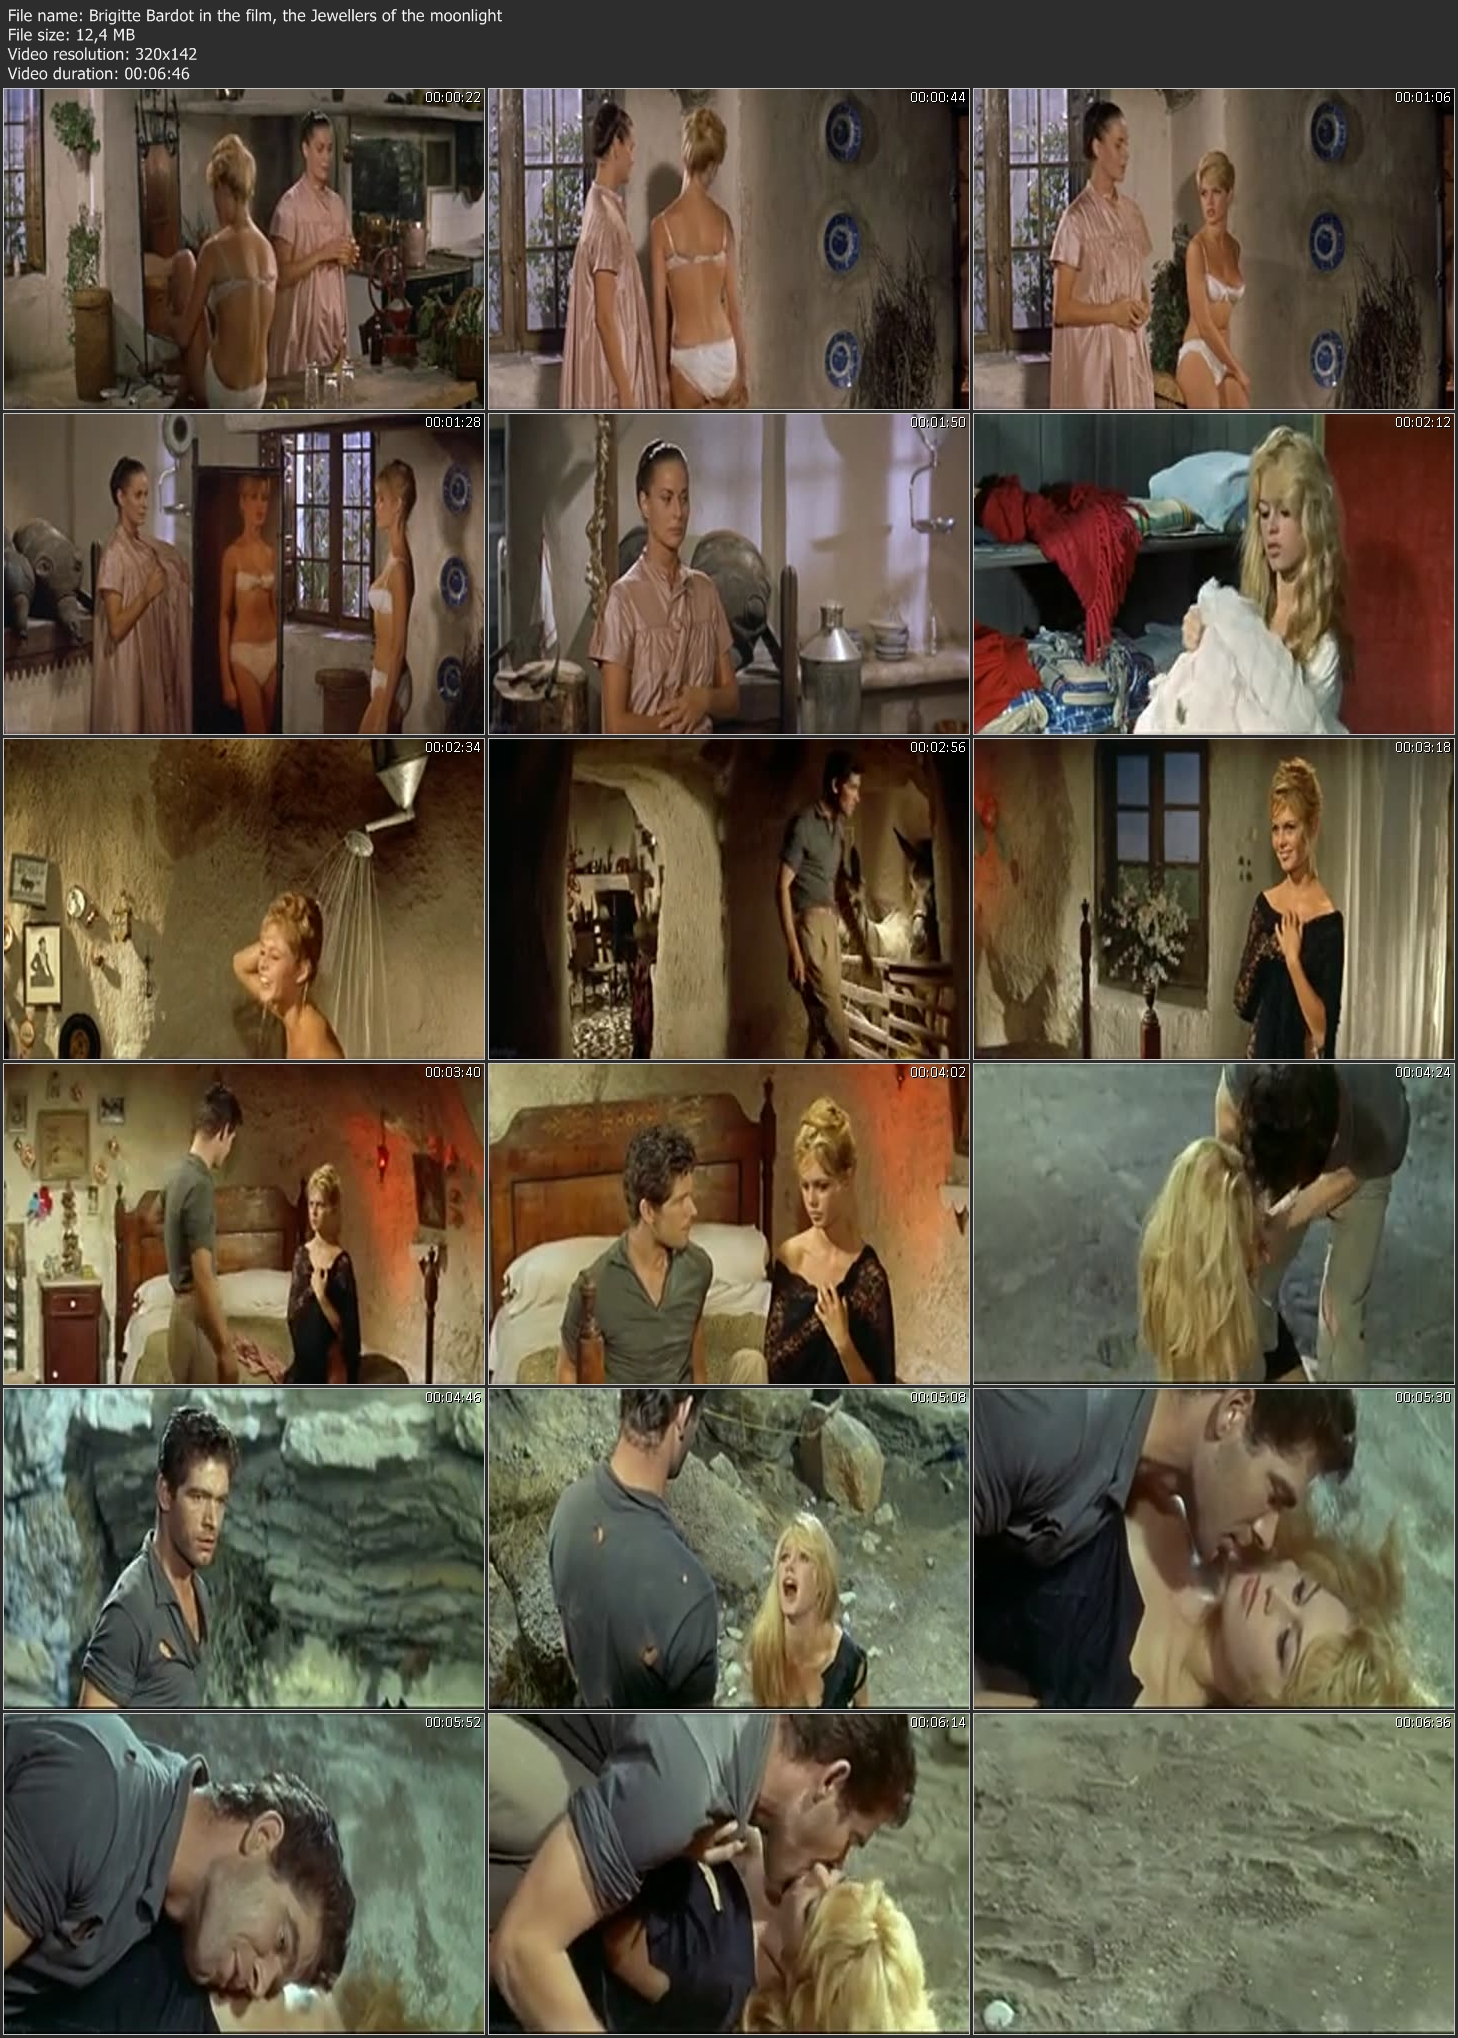 brigitte bardot in the film_ the jewellers of the moonlight (image 2),